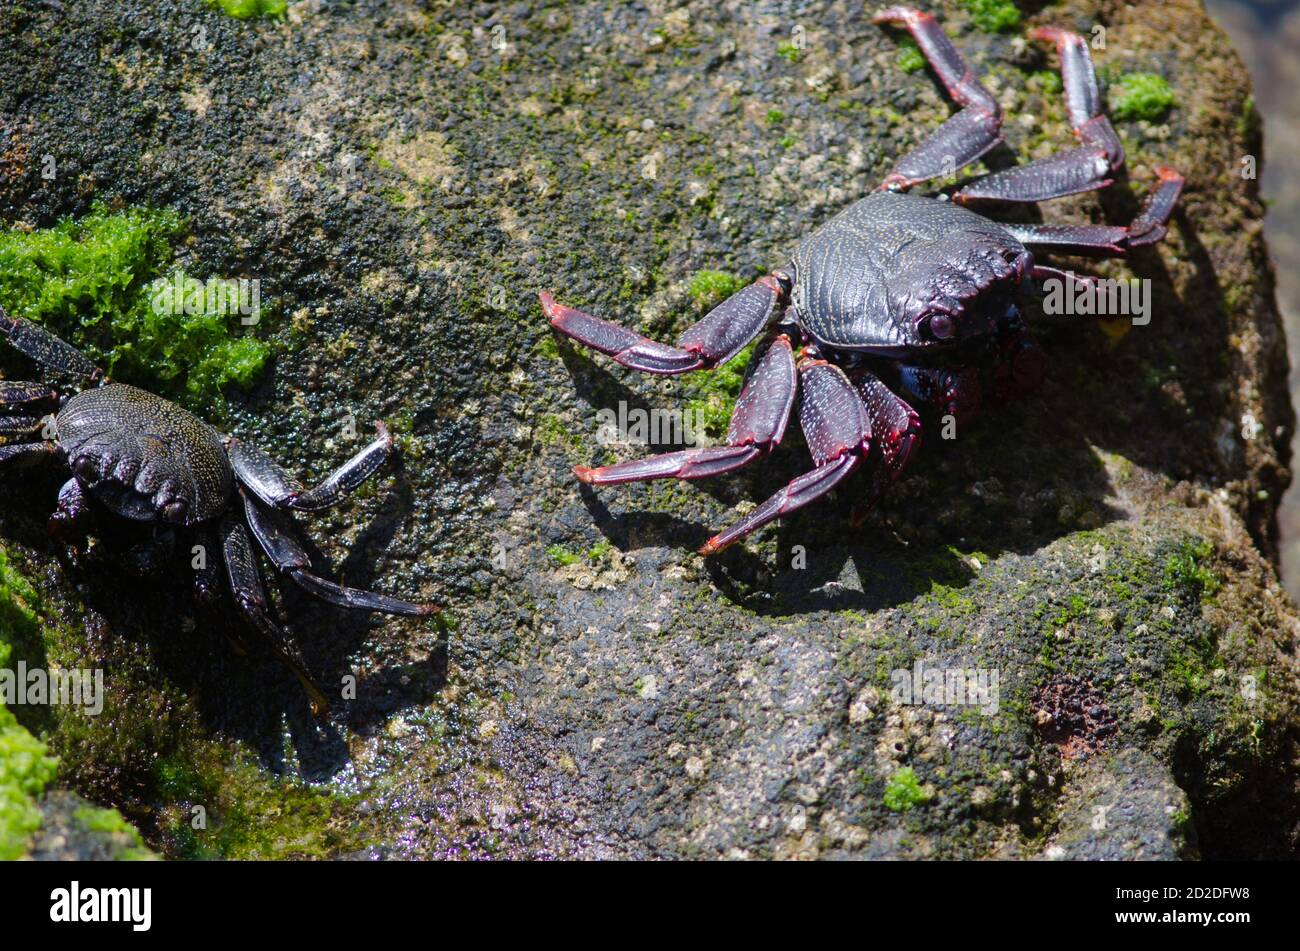 Rock crabs Grapsus adscensionis in Arinaga. Aguimes. Gran Canaria. Canary Islands. Spain. Stock Photo